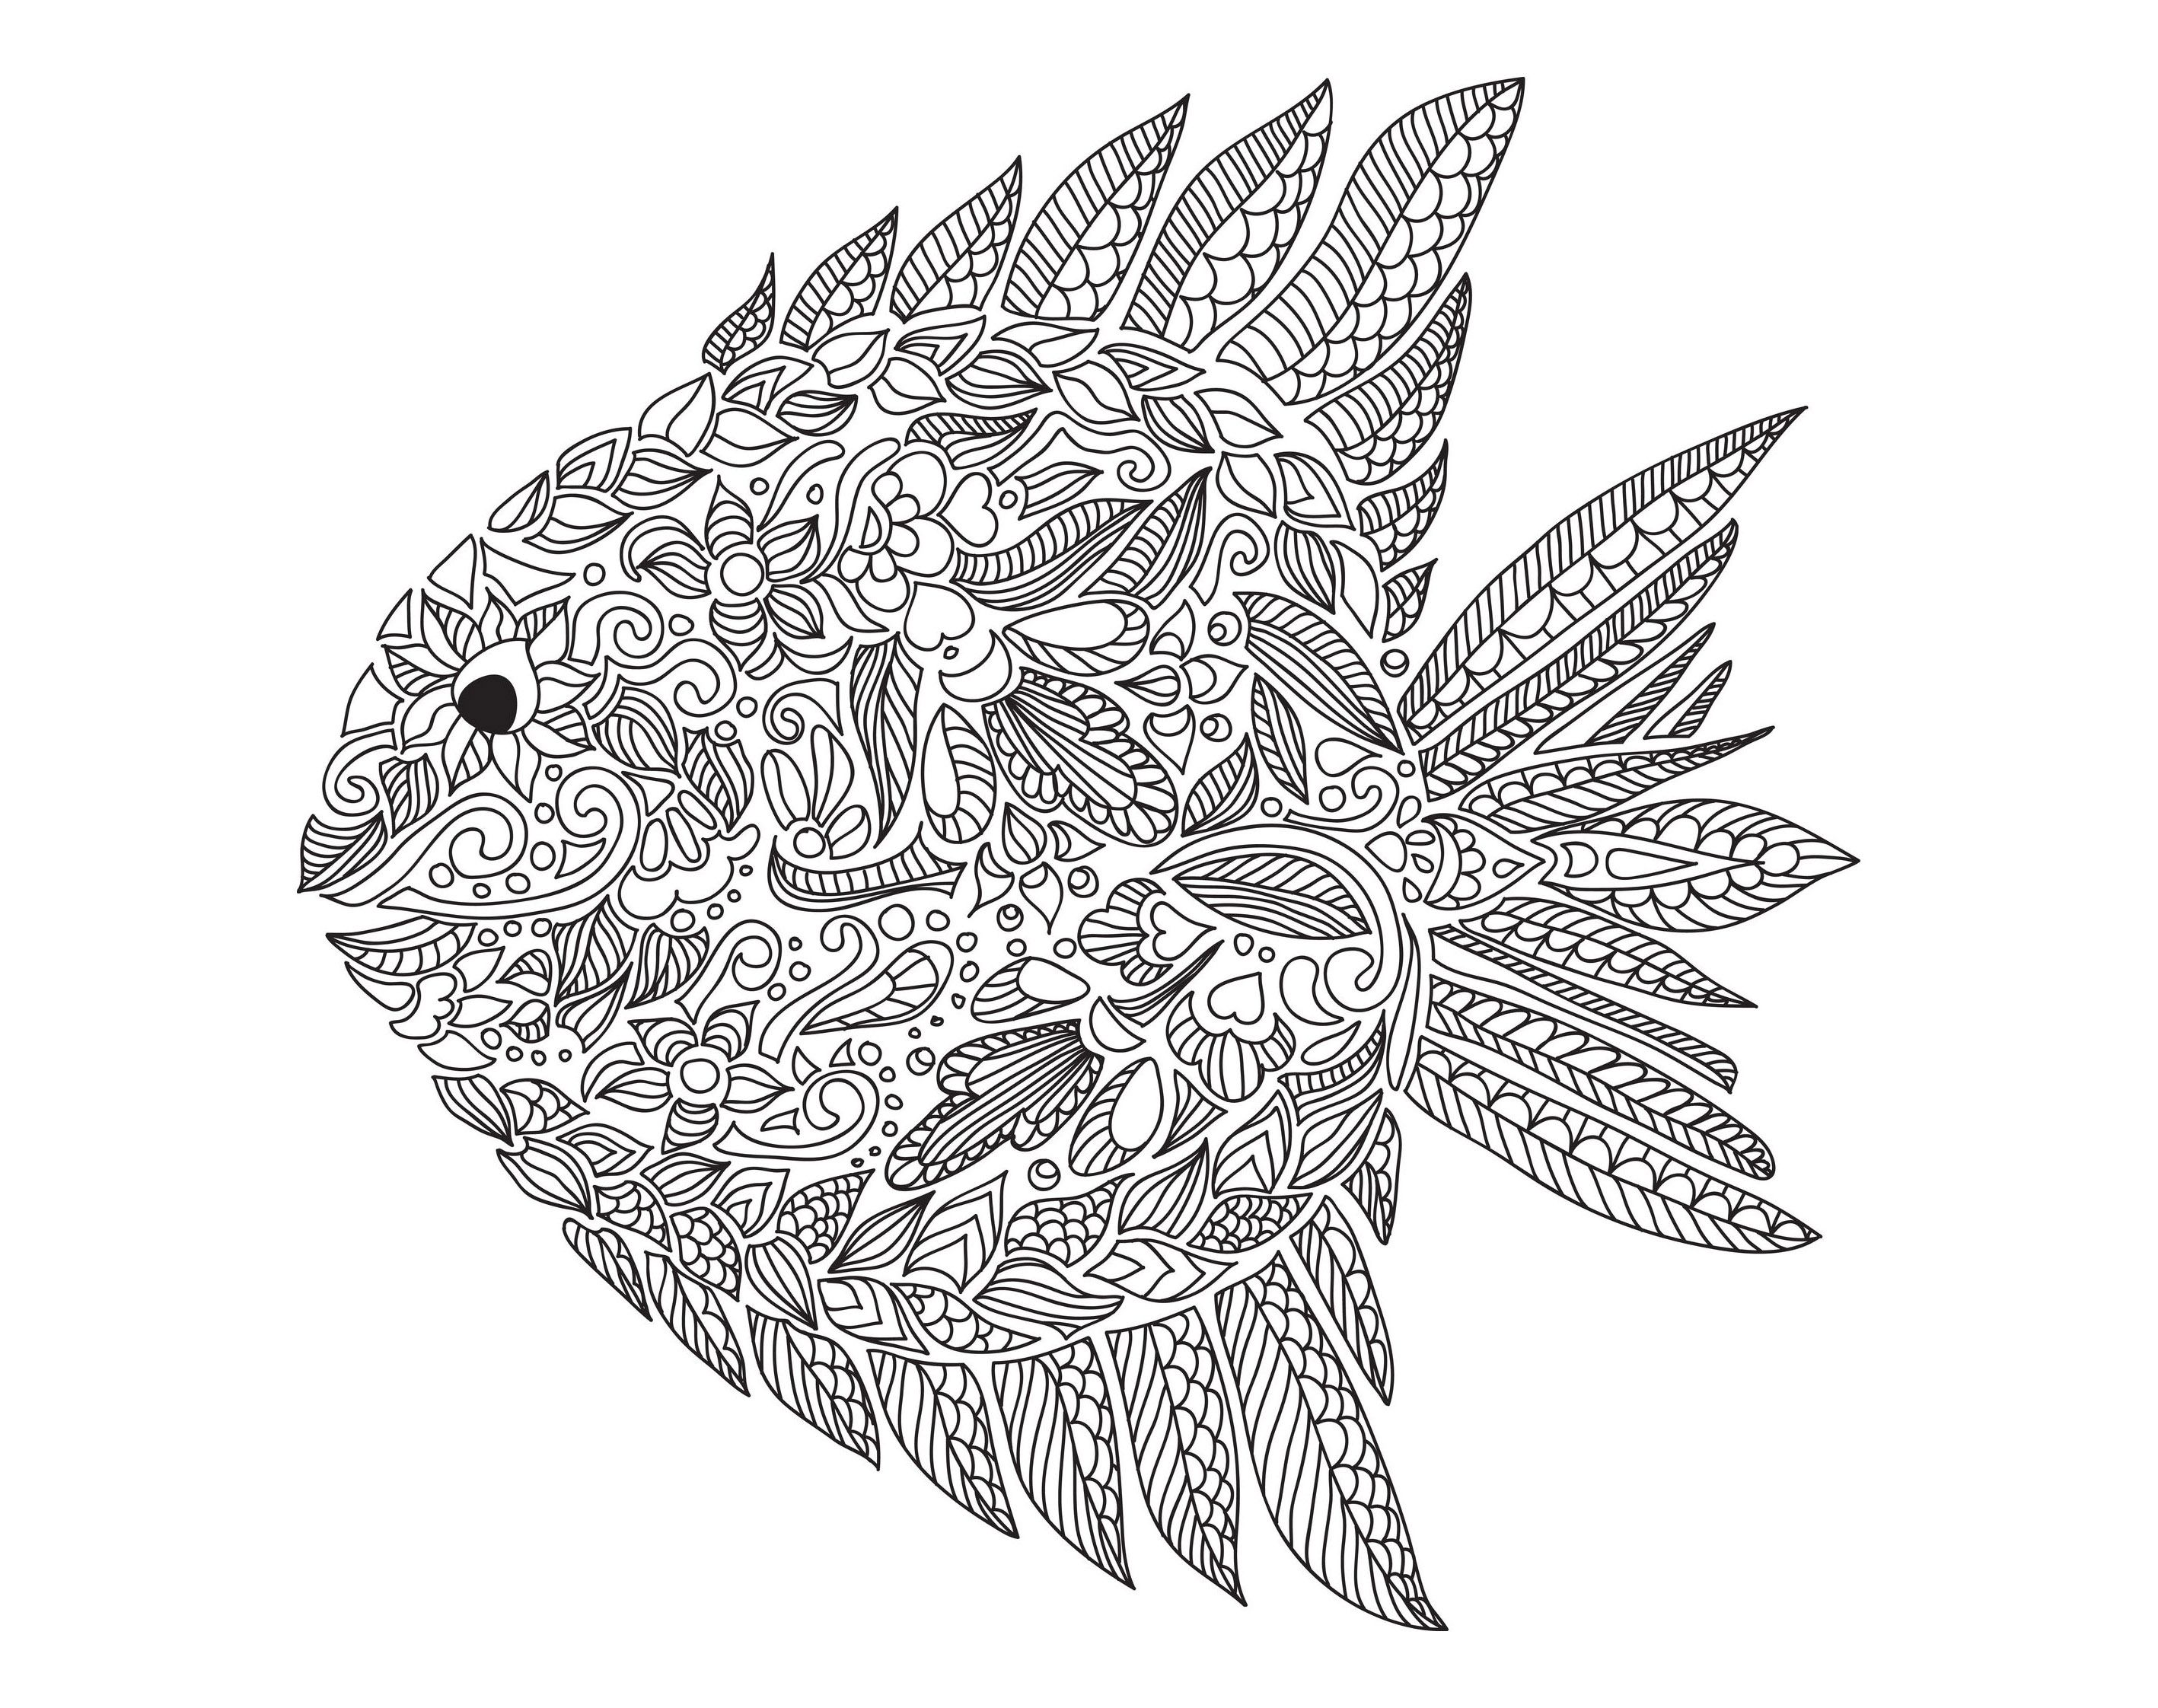 Free coloring pages fish - Free Coloring Page Coloring Zentangle Fish By Artnataliia Complex Zentangle Fish